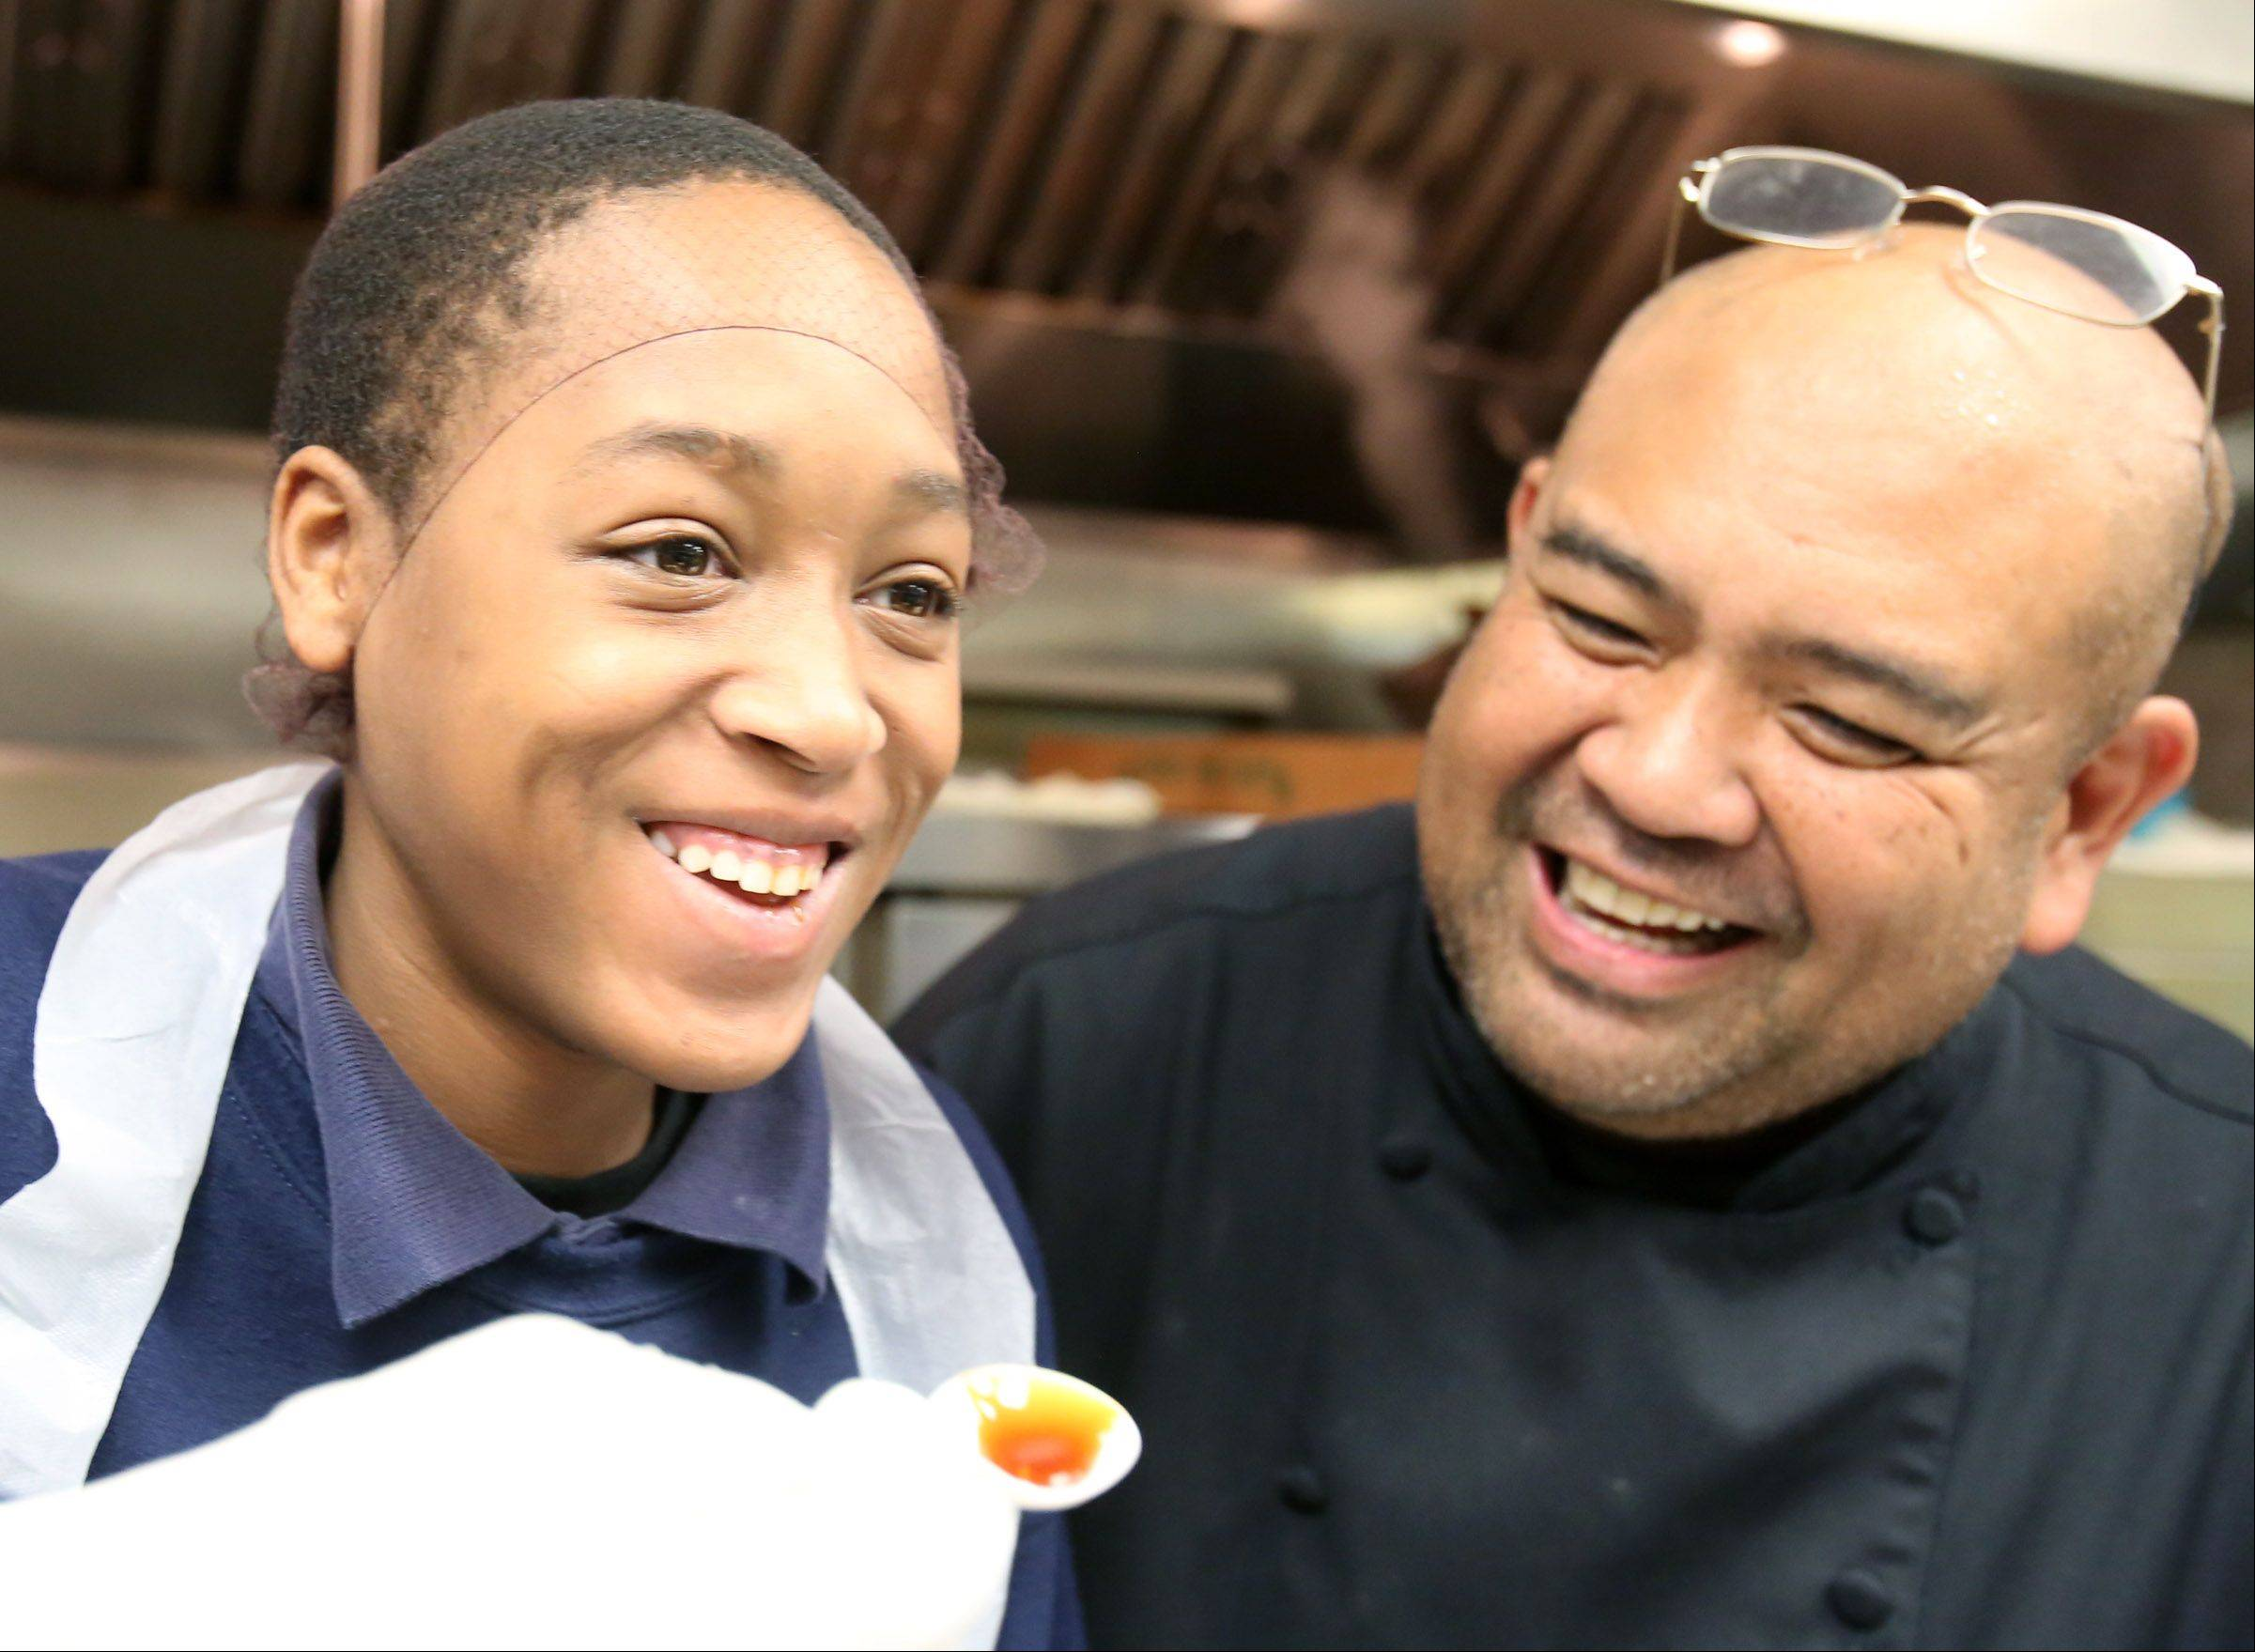 Chef Rodelio Aglibot watches student Desmond Balenitinse react to tasting the teriyaki sauce they prepared in the kitchen at Jen School in Des Plaines on Tuesday, October 29.